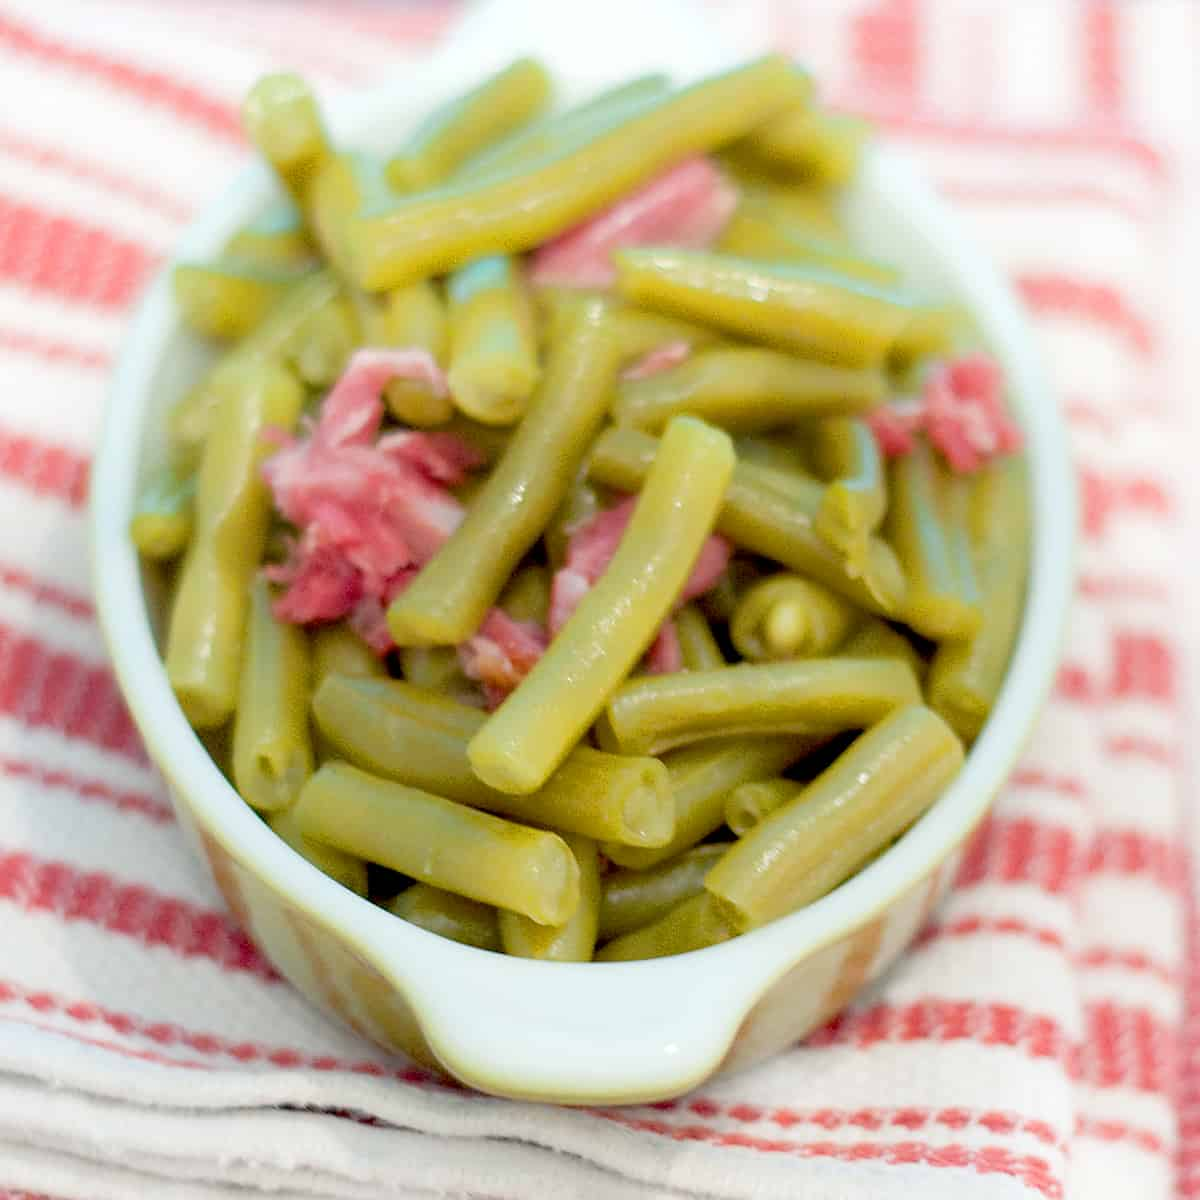 My low and slow method for cooking Old Fashioned Southern Green Beans with a beautiful, smoky ham hock broth for flavoring. From @NevrEnoughThyme https://www.lanascooking.com/old-fashioned-southern-green-beans/